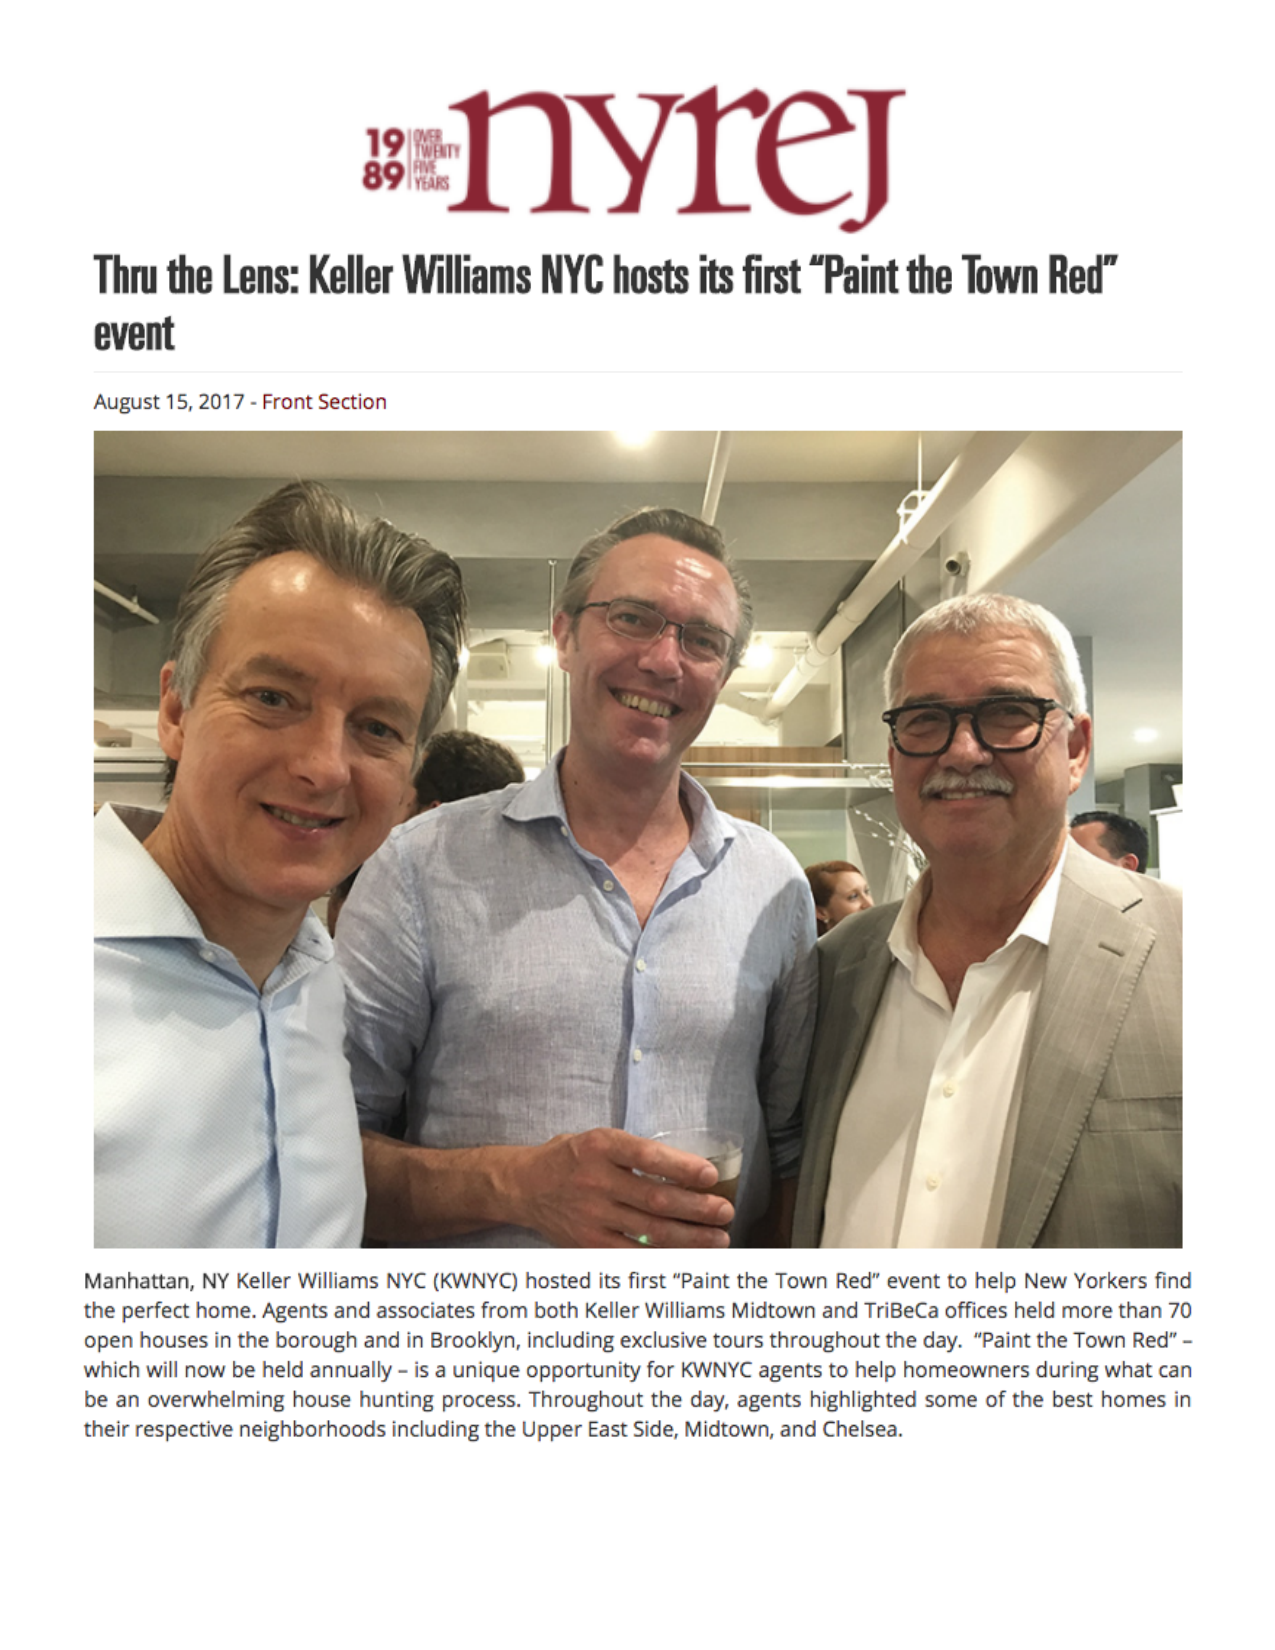 Thru the Lens: Keller Williams NYC hosts its first